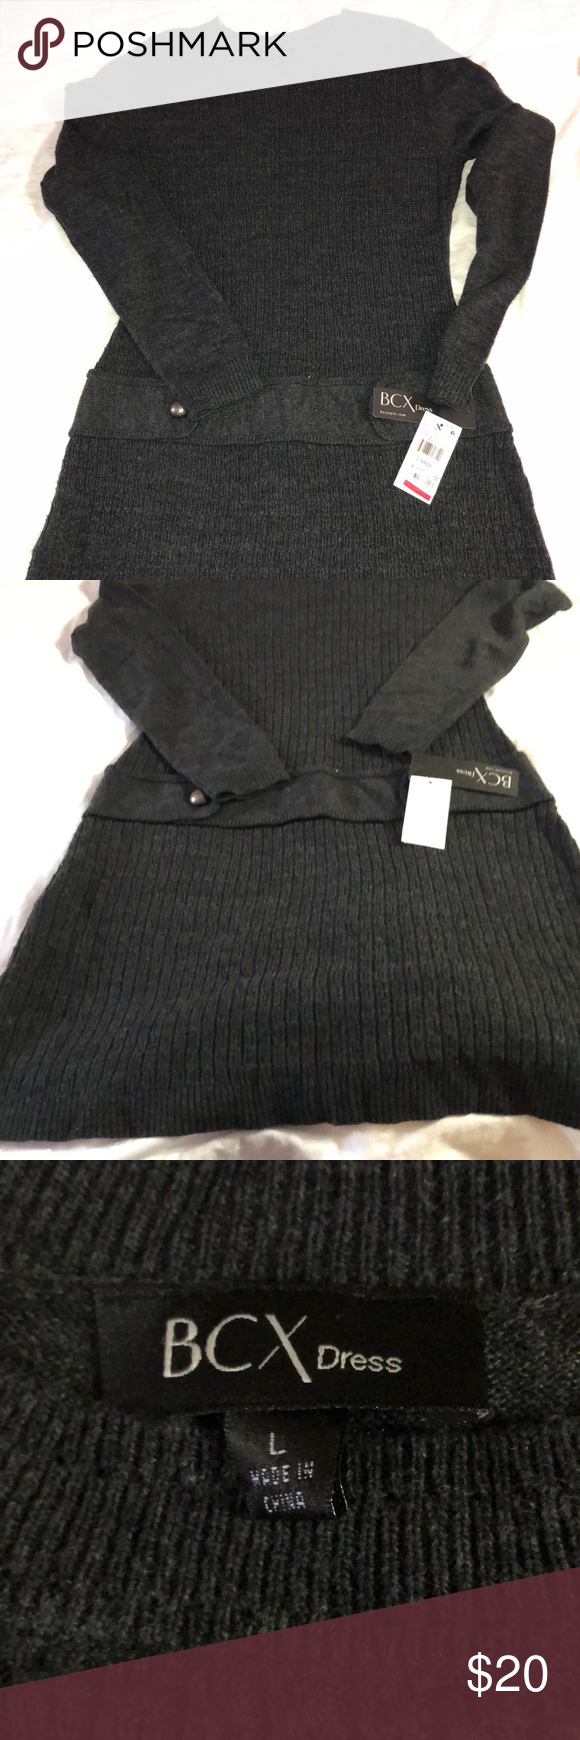 97cf6b1d718 BCX SWEATER dress large black price firm ( 50) Is a brand new BCX sweater